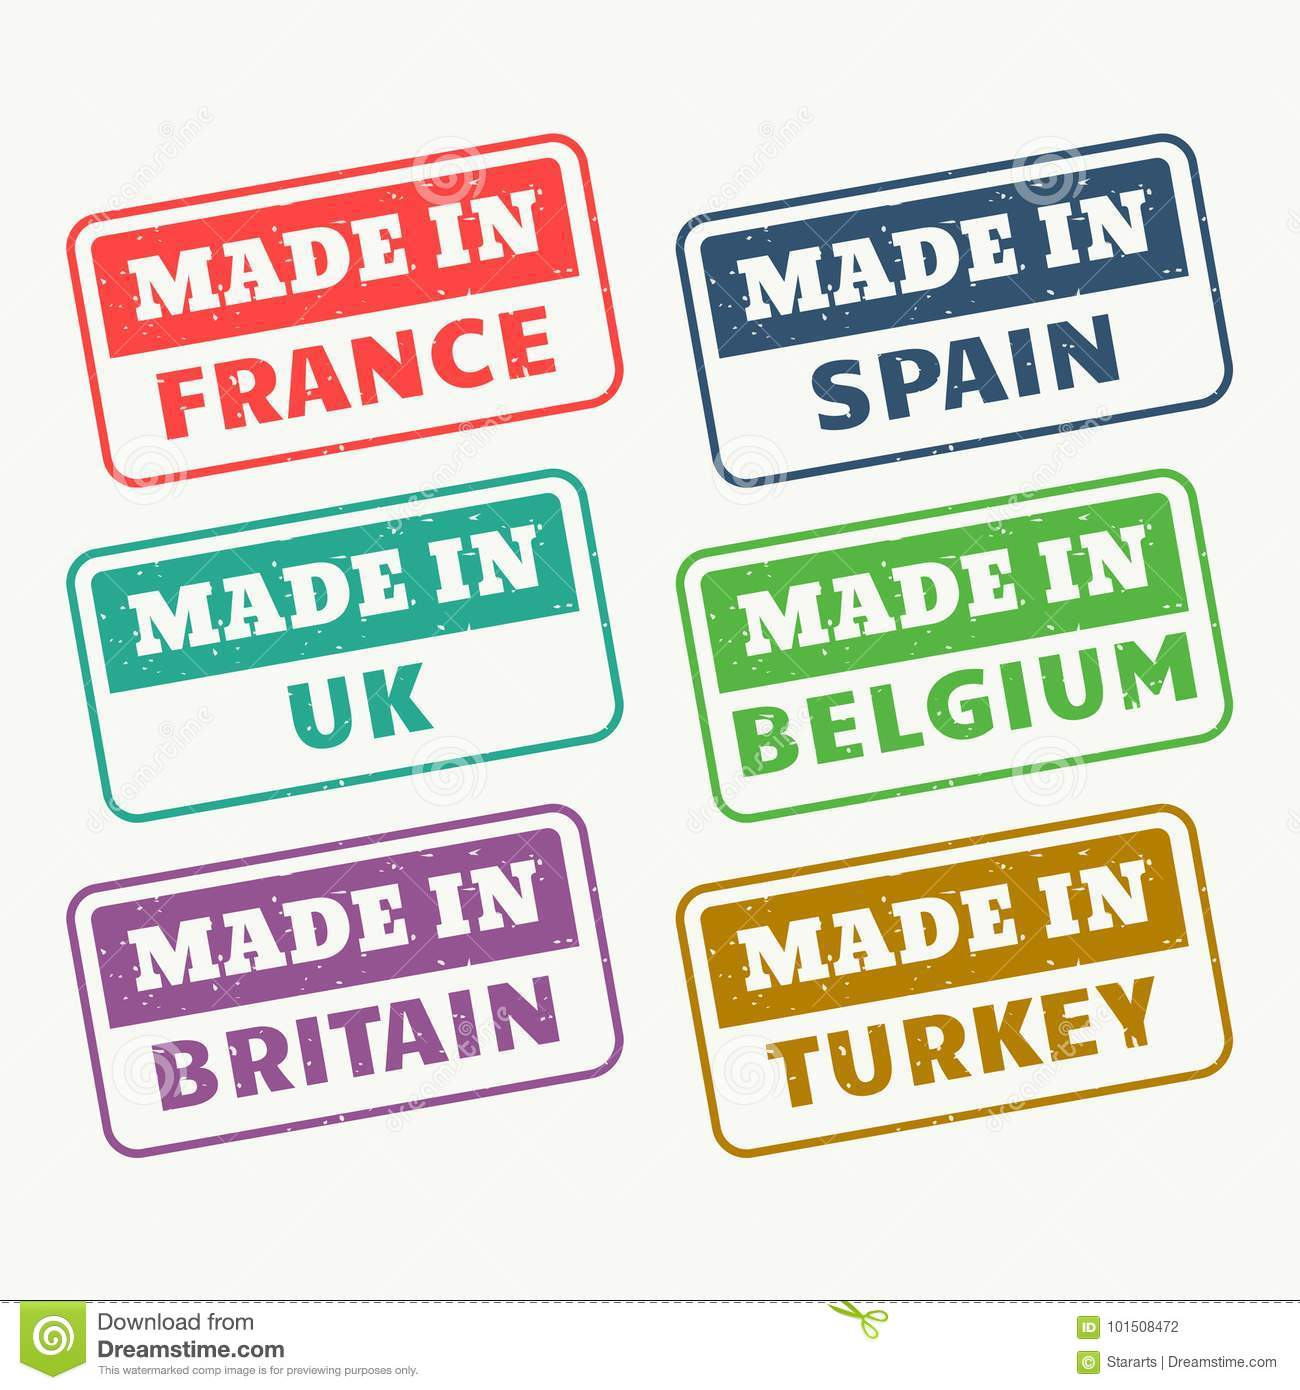 Made in france, spain, uk, belgium, britain and turky stamps set